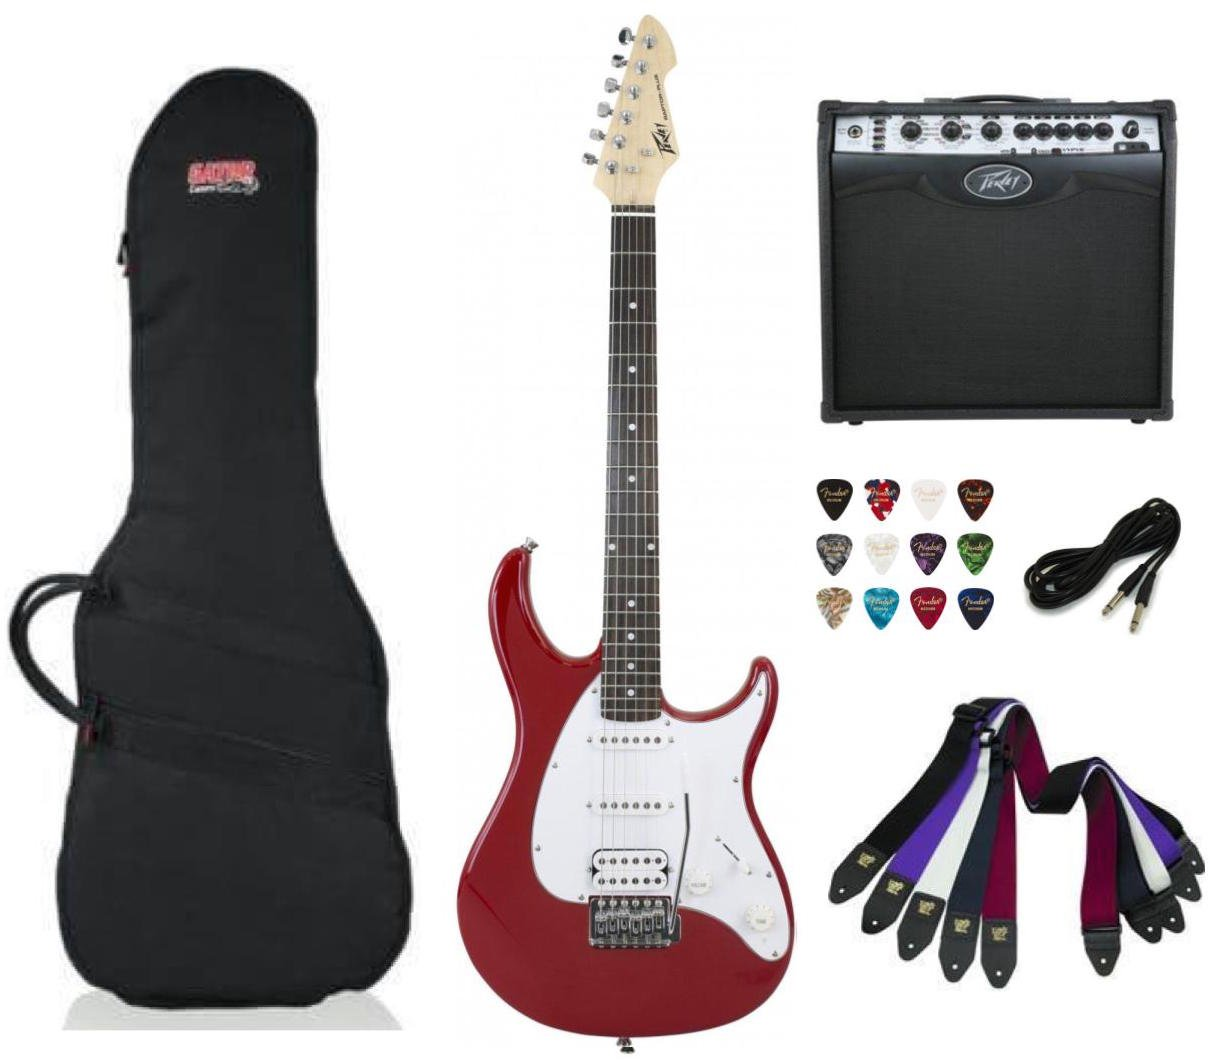 Peavey Raptor Plus Electric Guitar SSH - Red Package Deal with Amplifier, Gig Bag, Cable, Straps and Picks